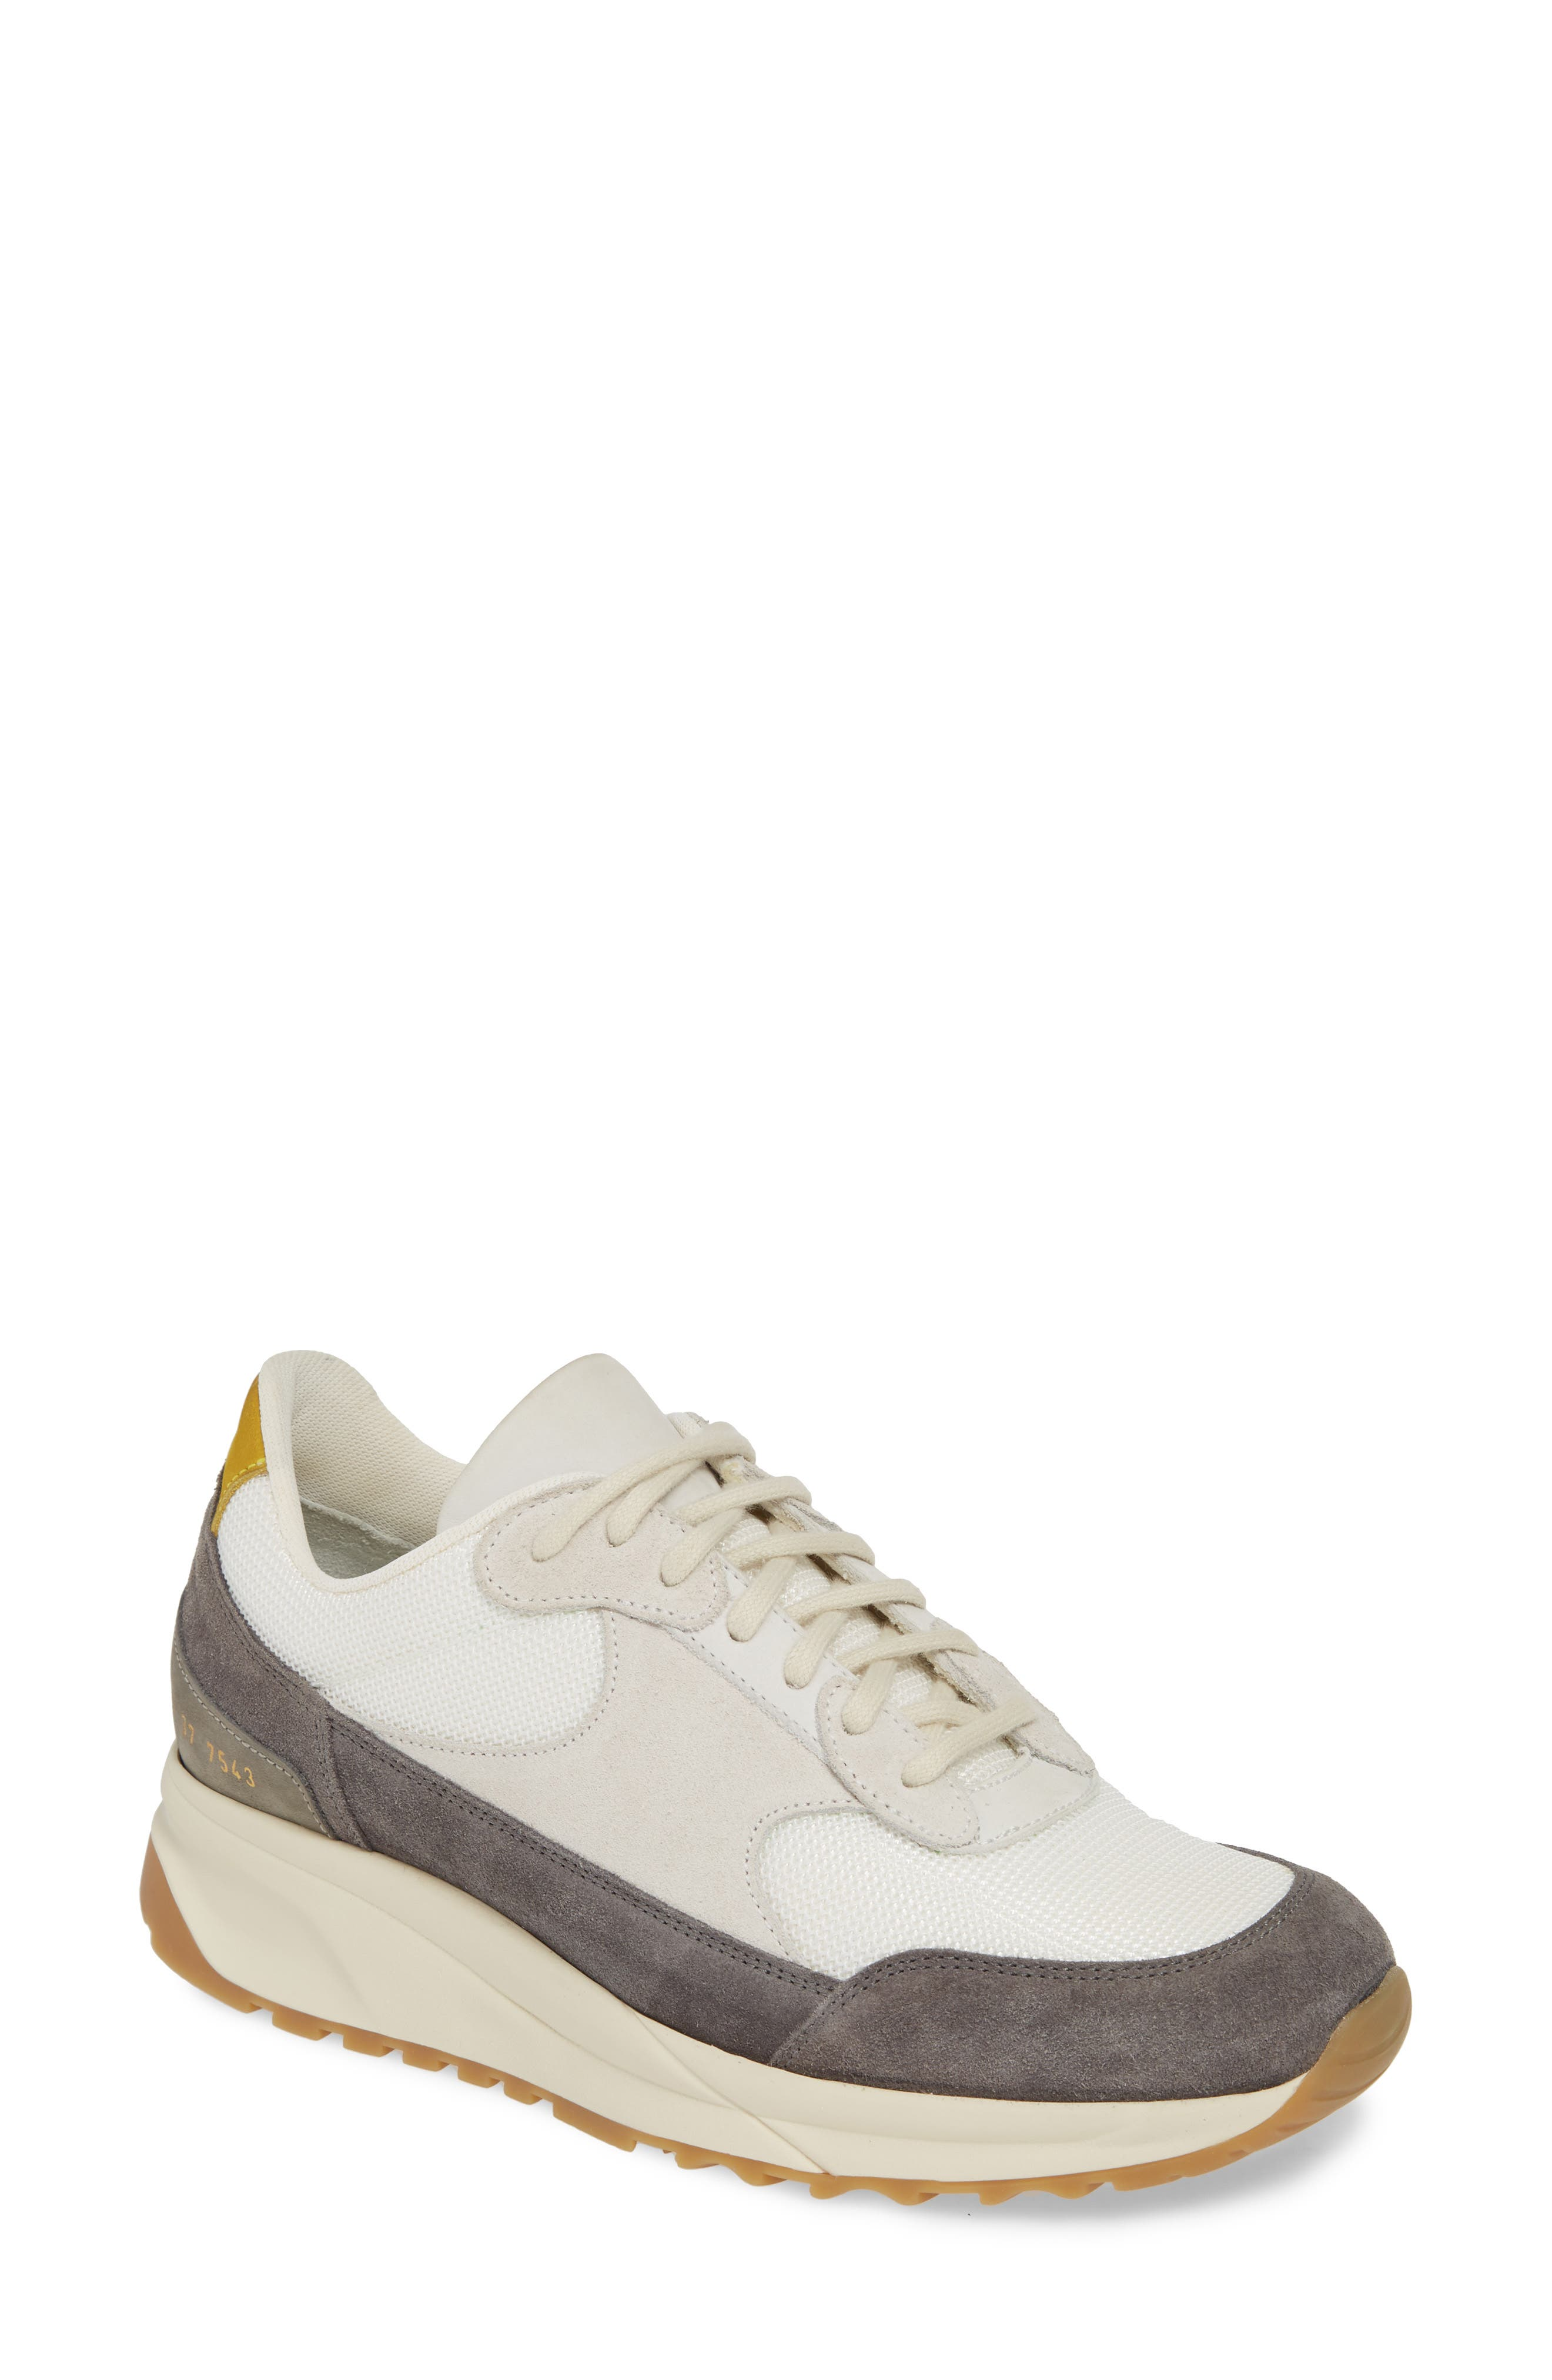 COMMON PROJECTS, New Track Sneaker, Main thumbnail 1, color, WHITE/ GREY